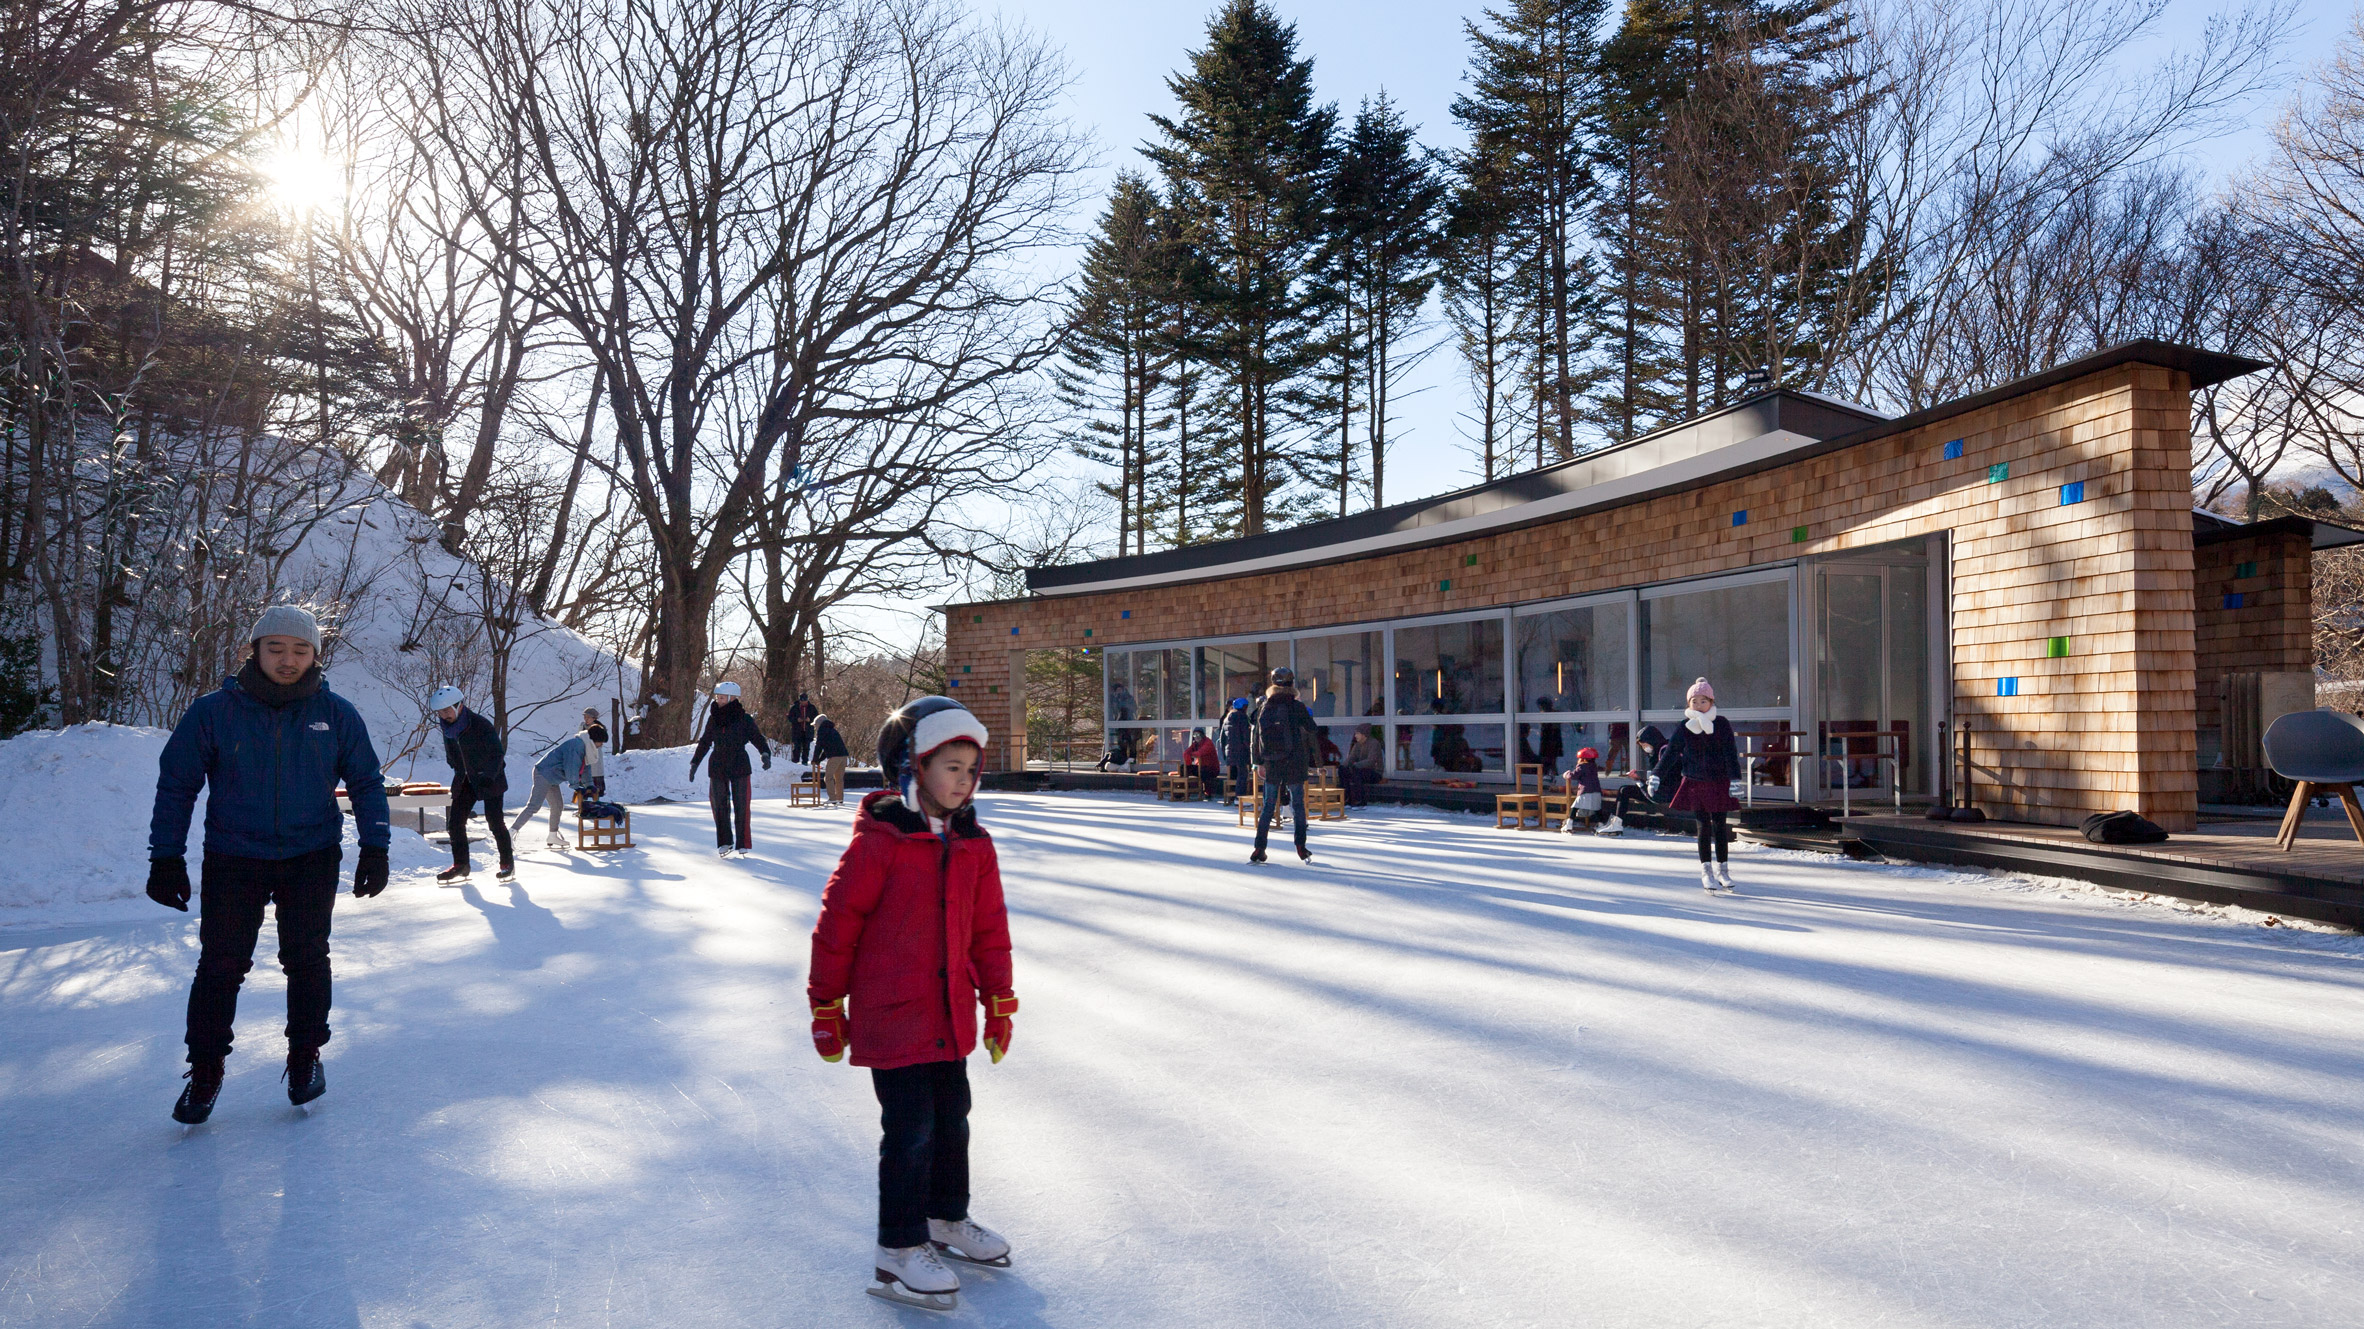 shingled clubhouse and visitor centre faces ice rink in a japanese